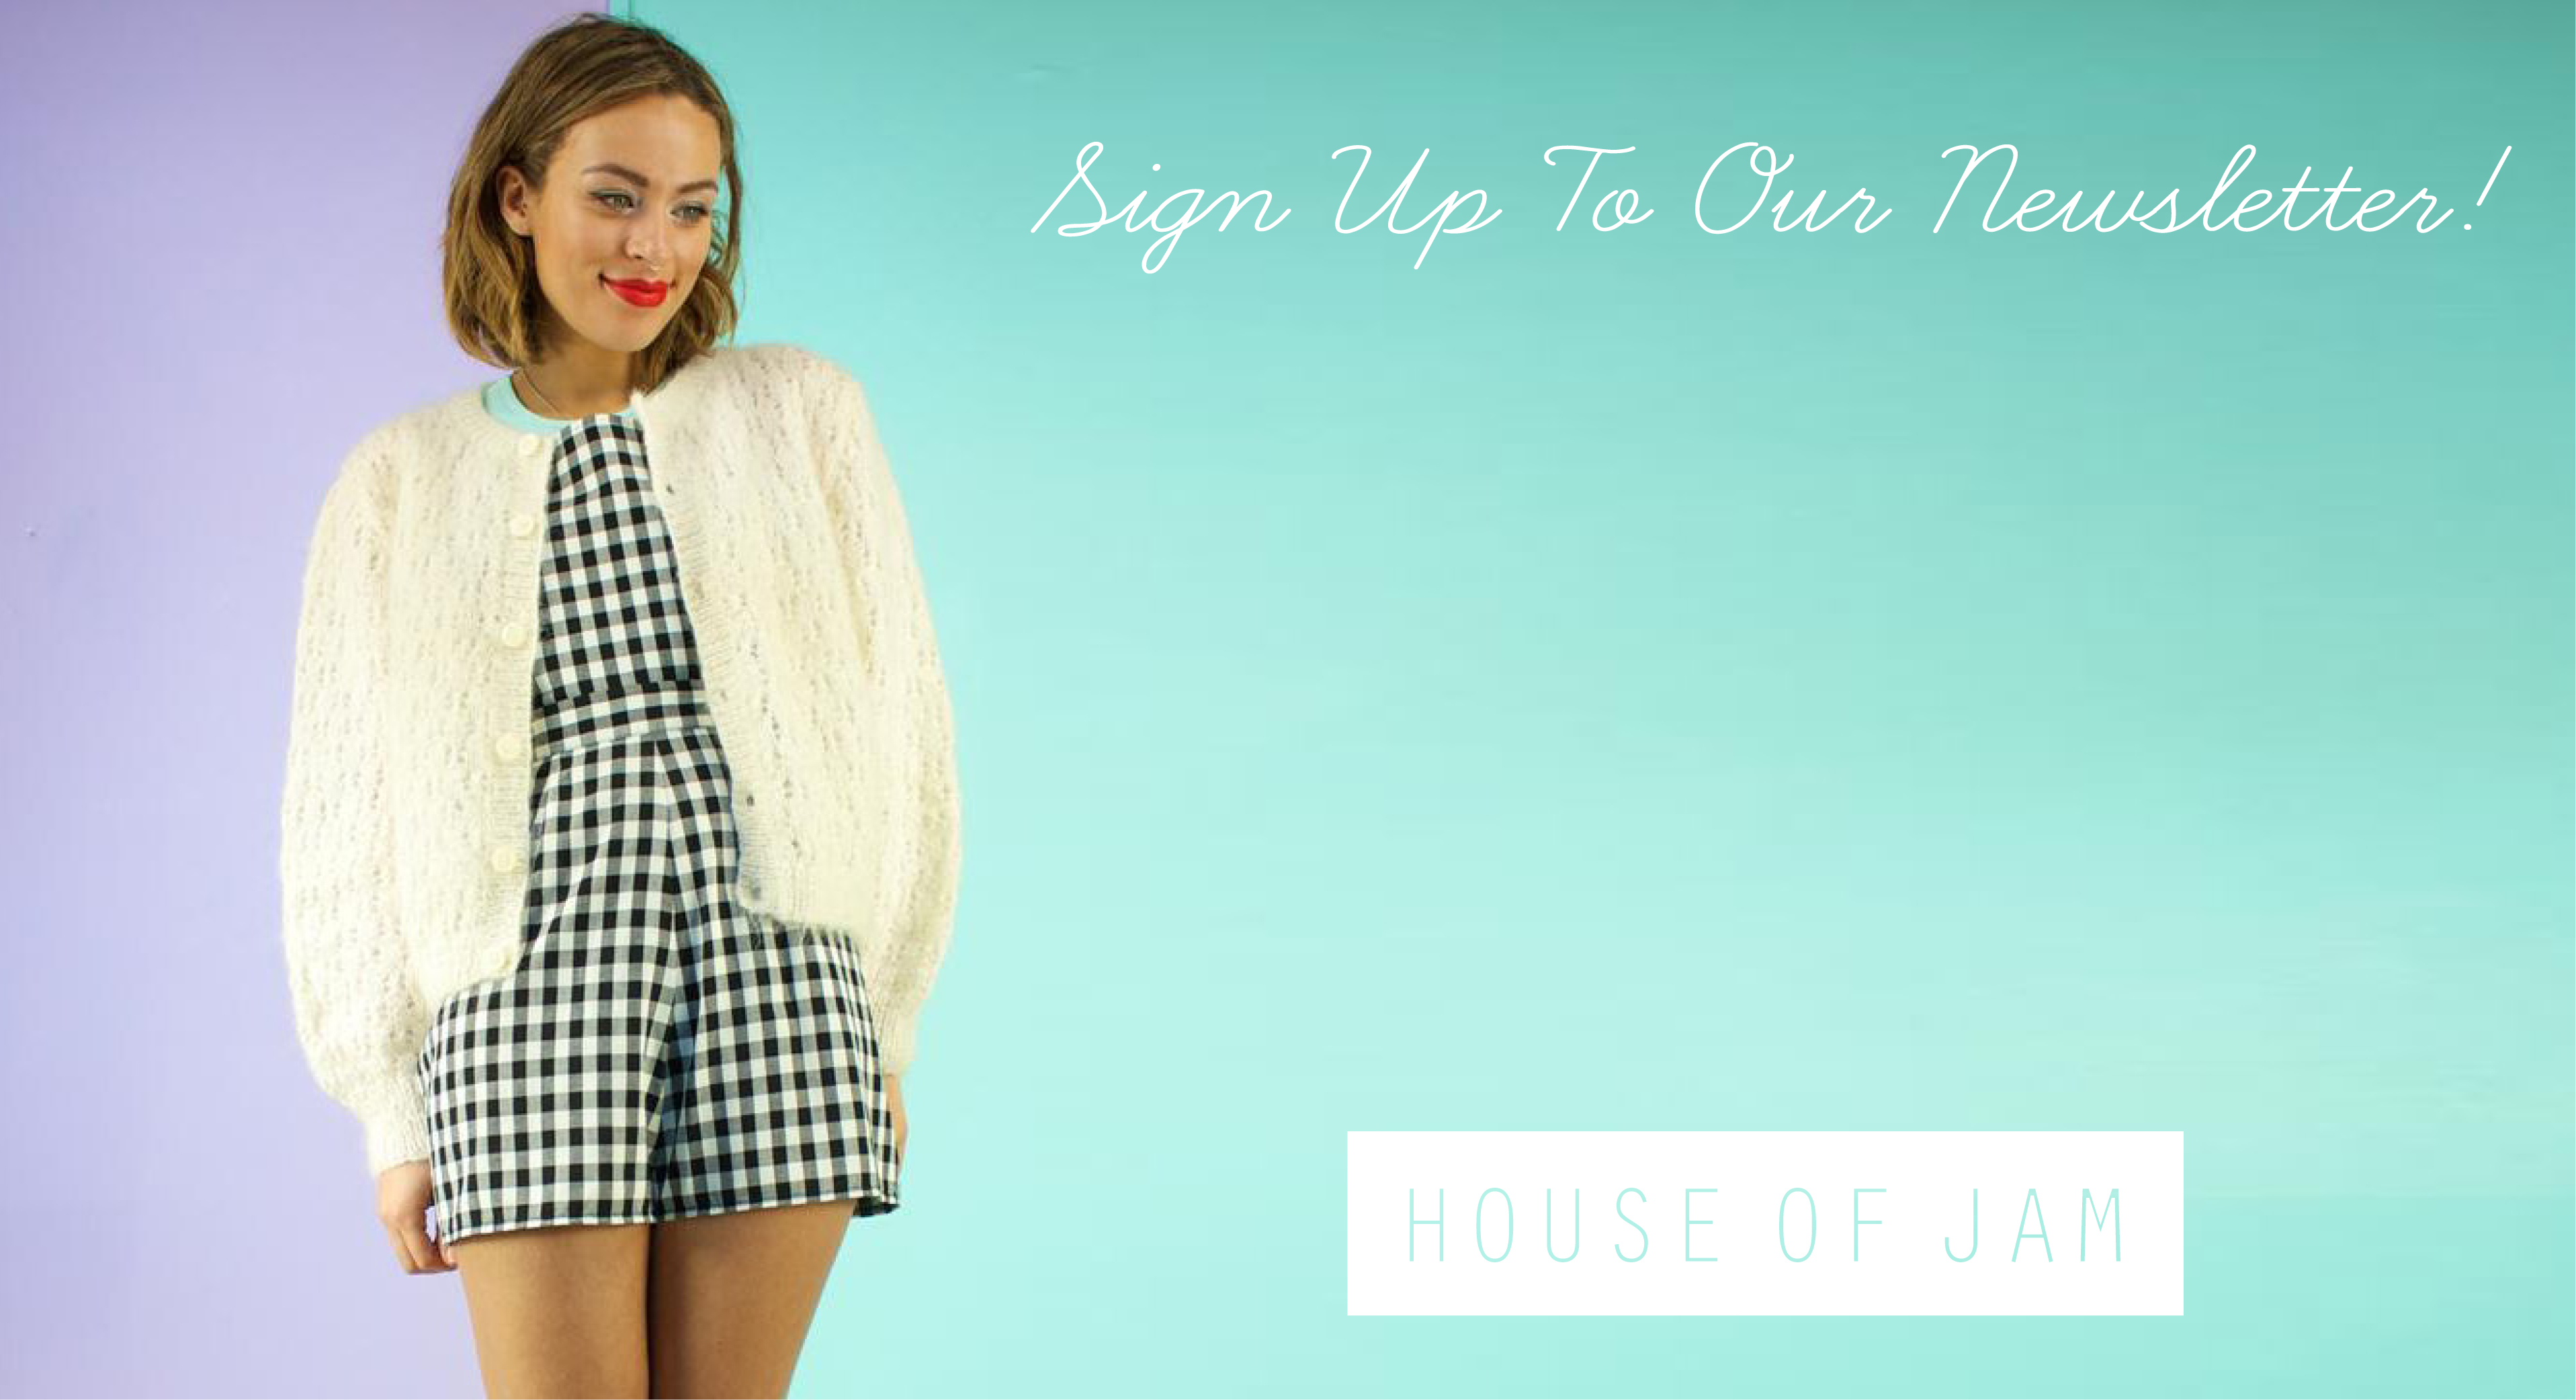 We Are House Of Jam, Handpicked Vintage & Exclusive Original Designs